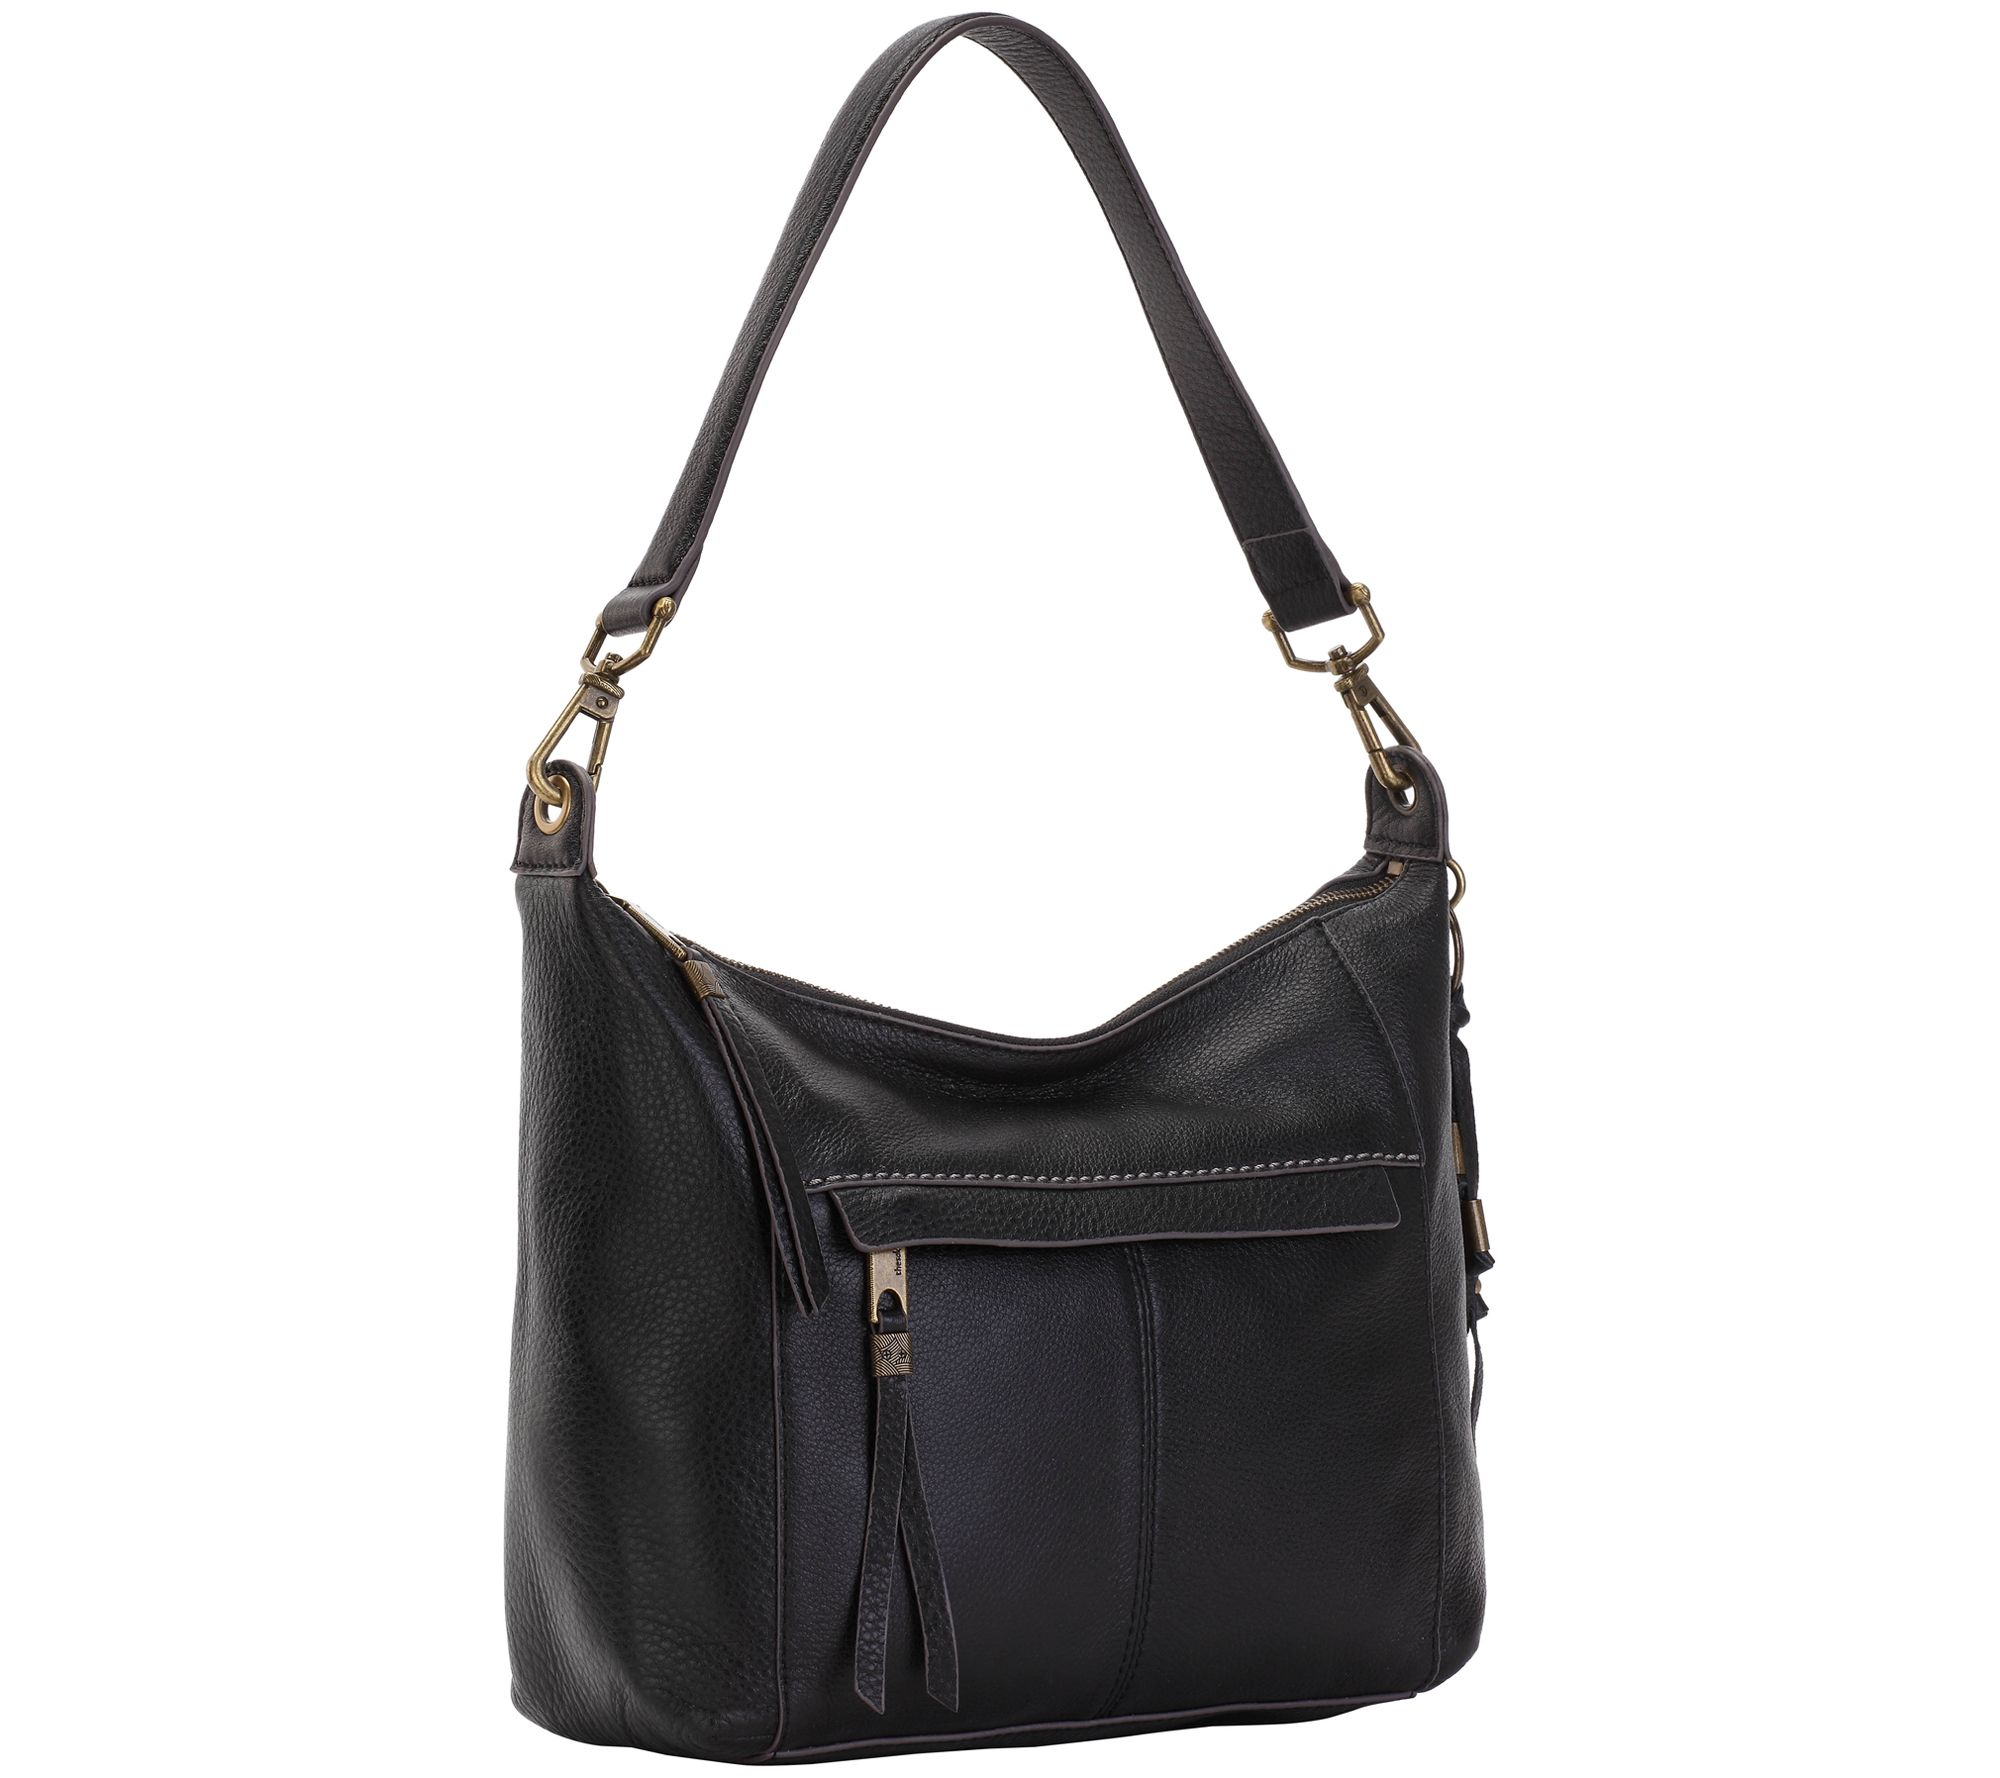 5d2bd542abde The Sak Alameda Leather Hobo Handbag - Page 1 — QVC.com